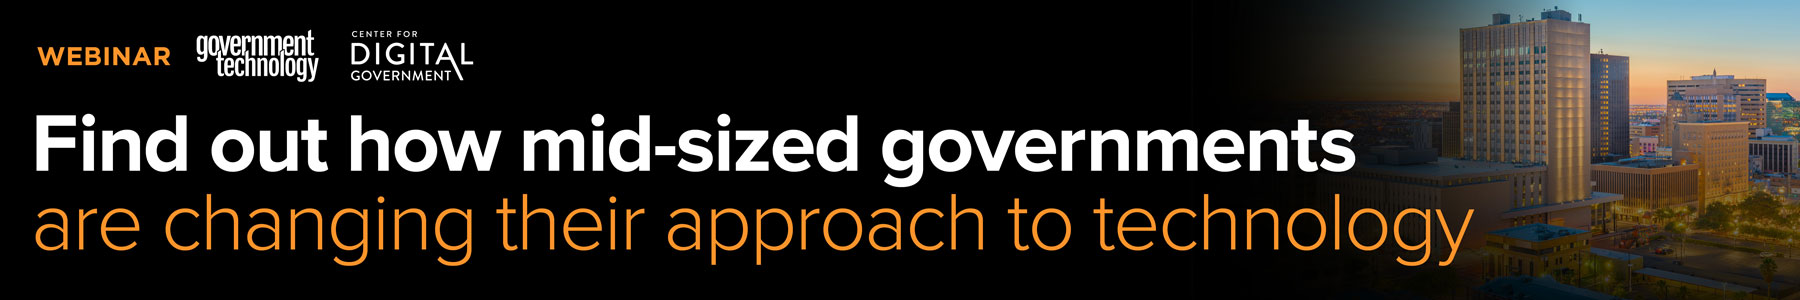 Find out how mid-sized governments are changing their approach to technology